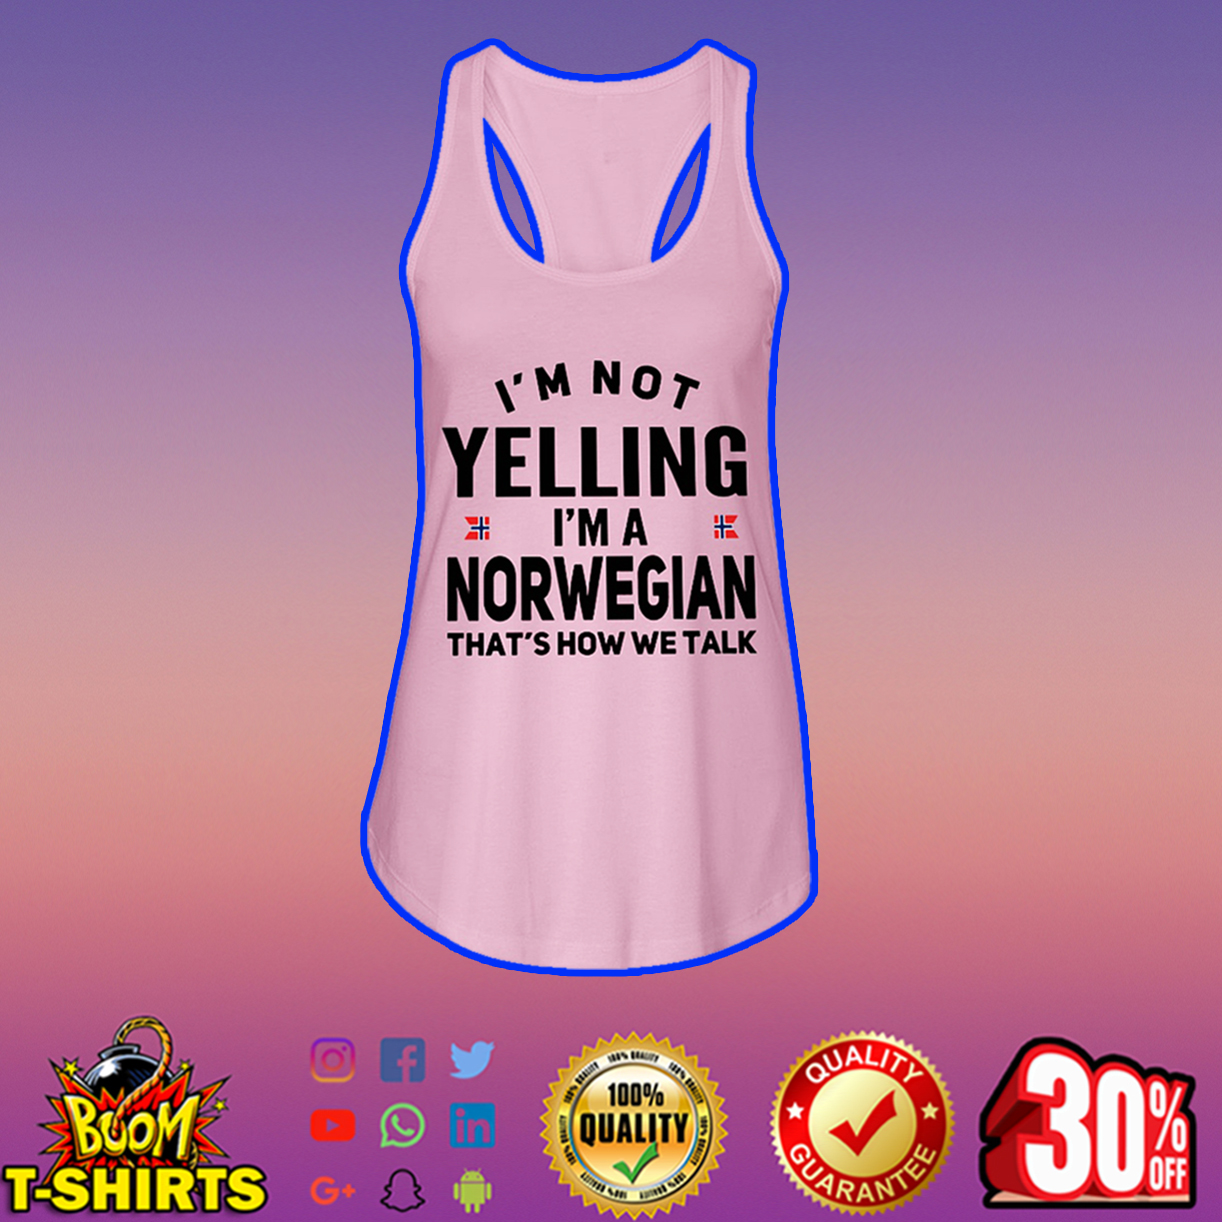 I'm not yelling I'm a Norwegian that's how we talk flowy tank